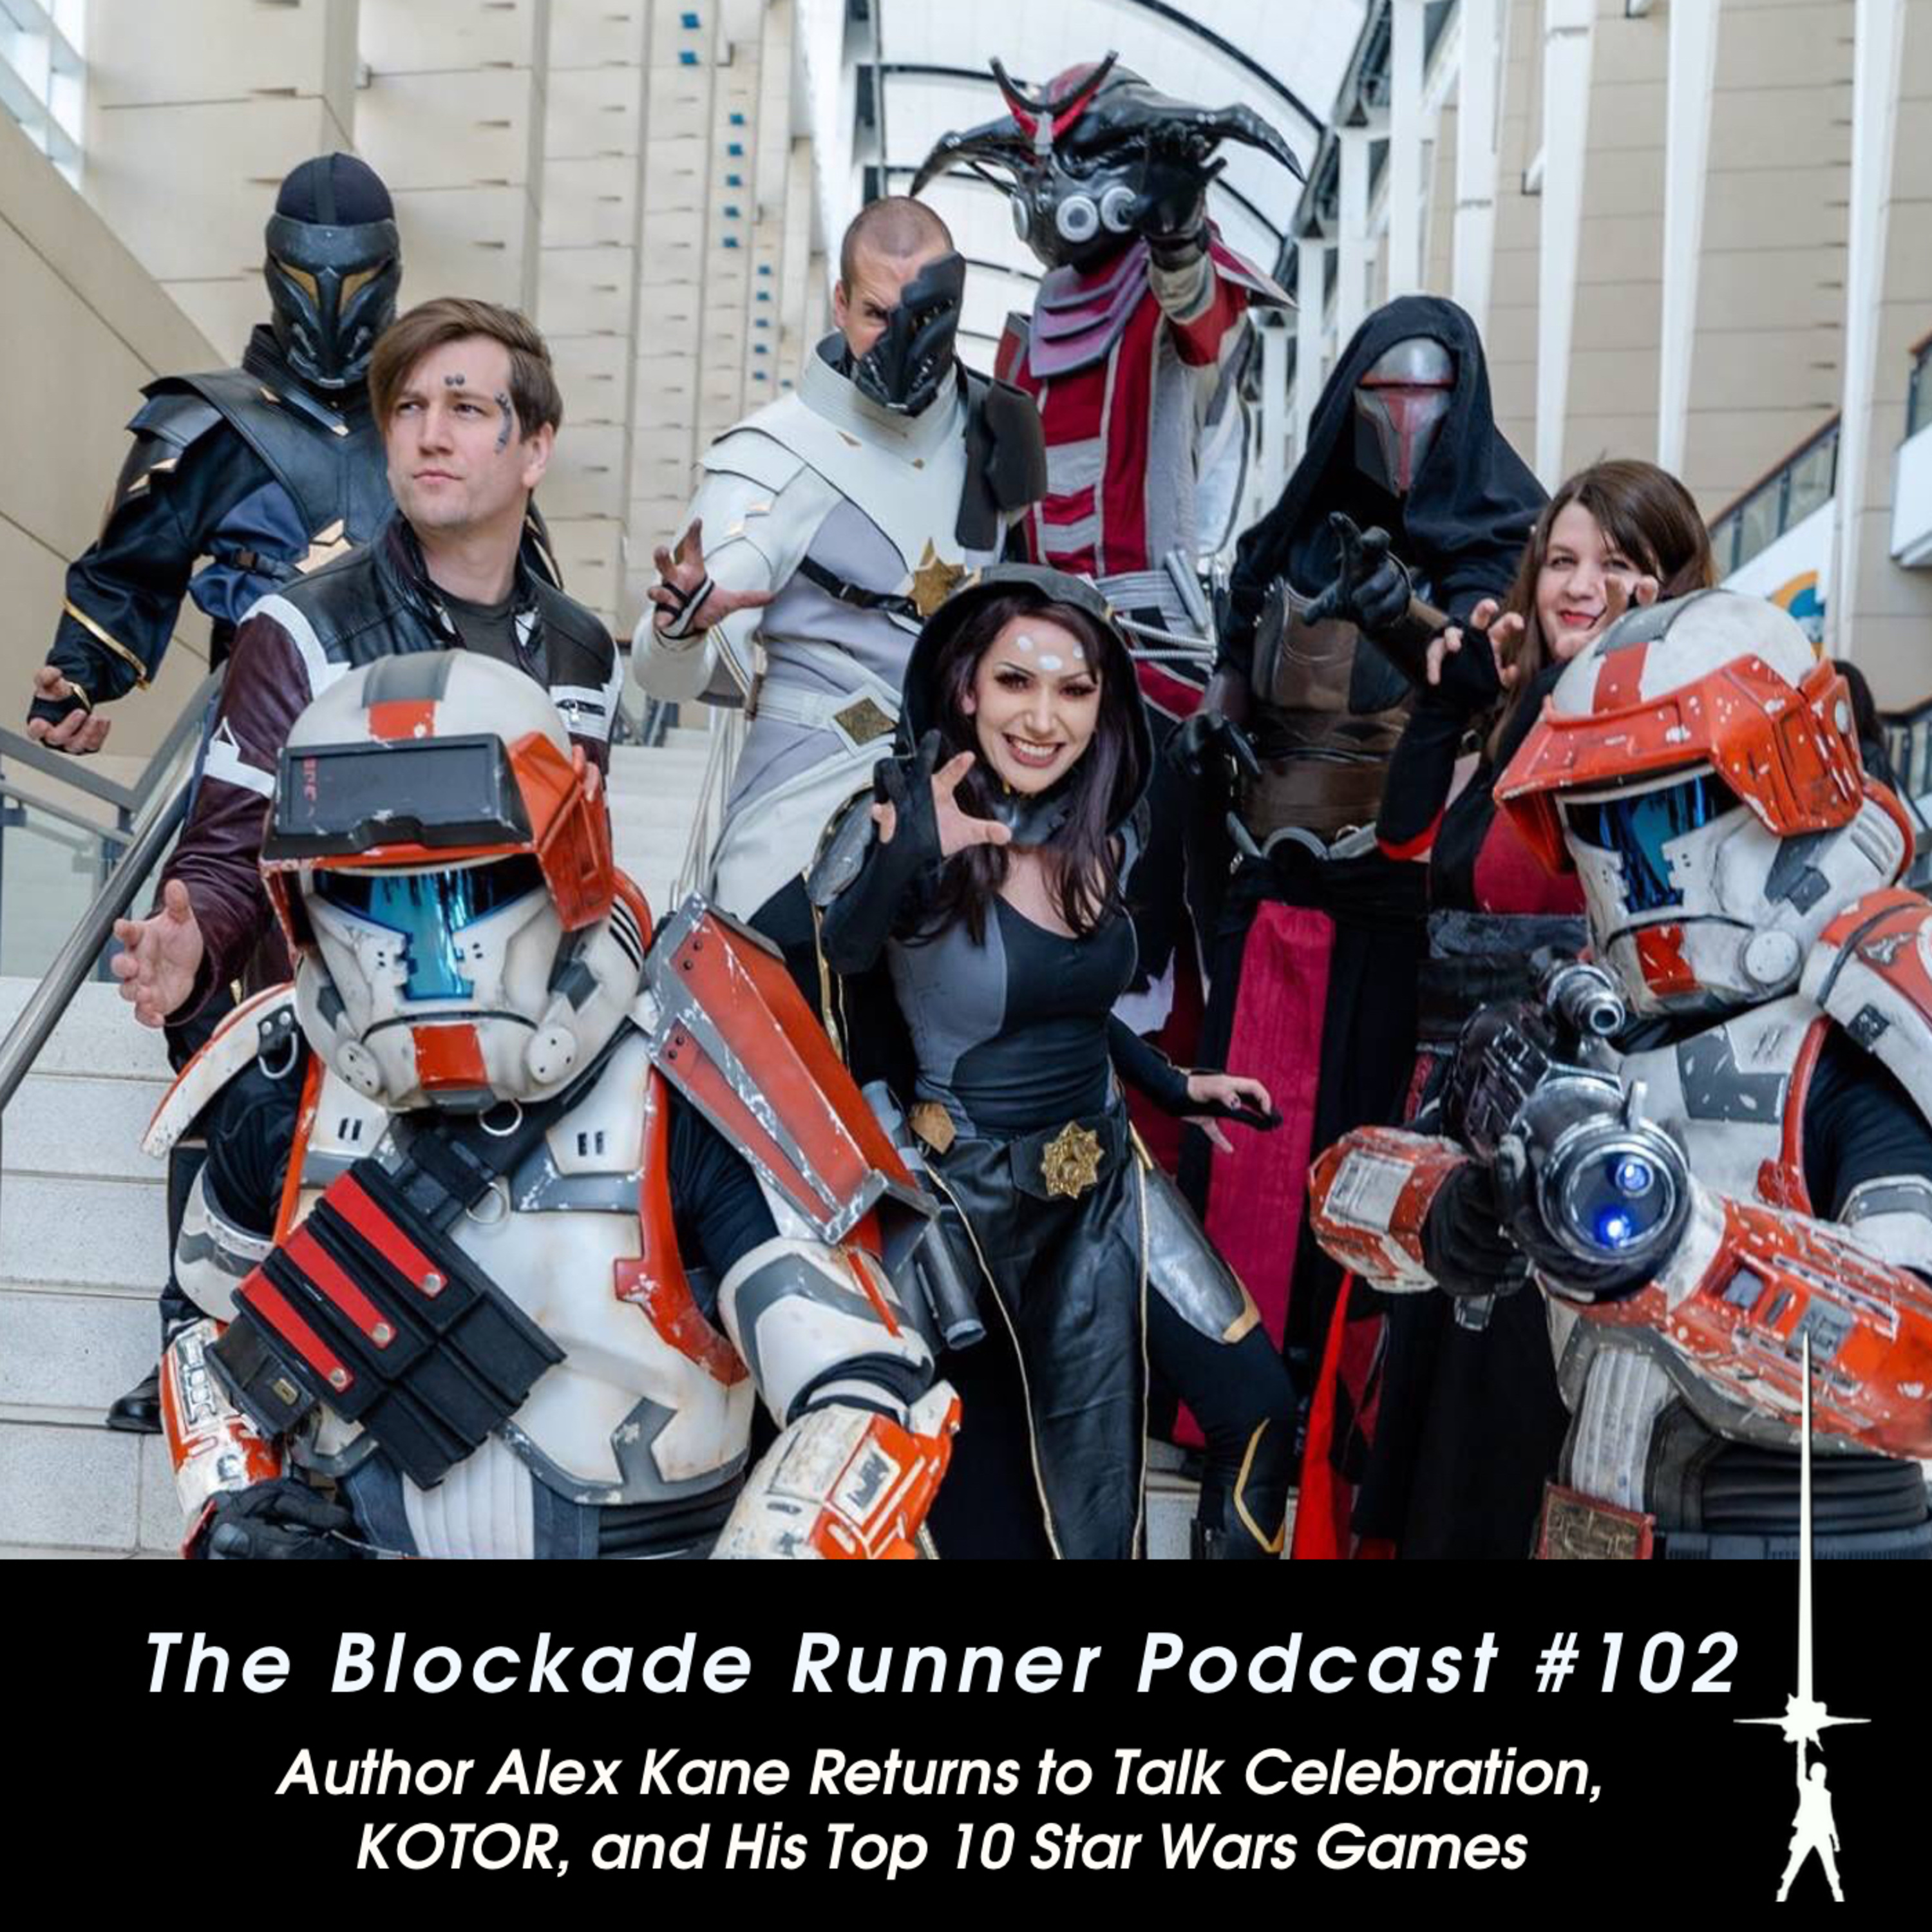 Author Alex Kane Returns to Talk KOTOR, Celebration, and His Top 10 Star Wars Games - The Blockade Runner Podcast #102